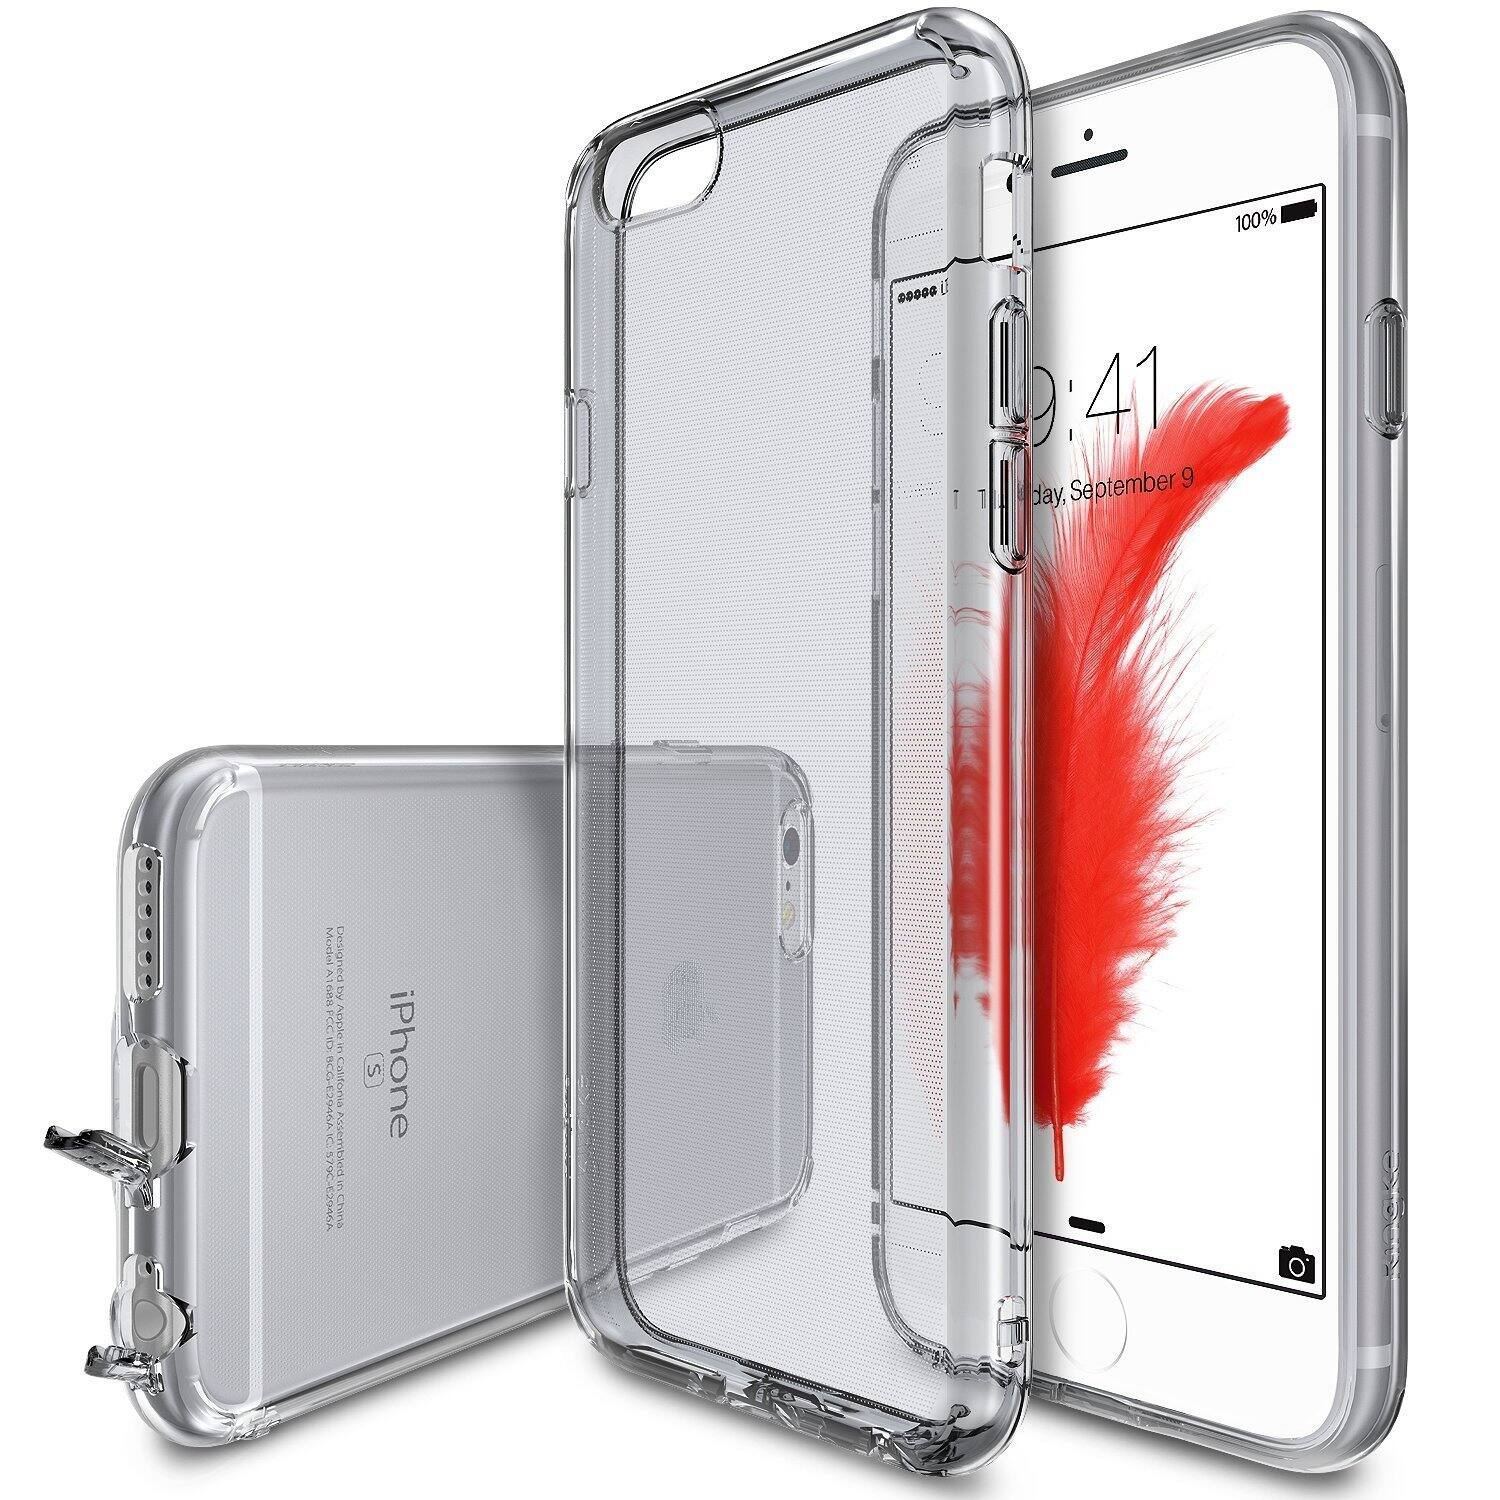 Ringke Cases for iPhone 6S/6S Plus/SE, Galaxy S7/S7Edge & More  $4.50 + Free Shipping